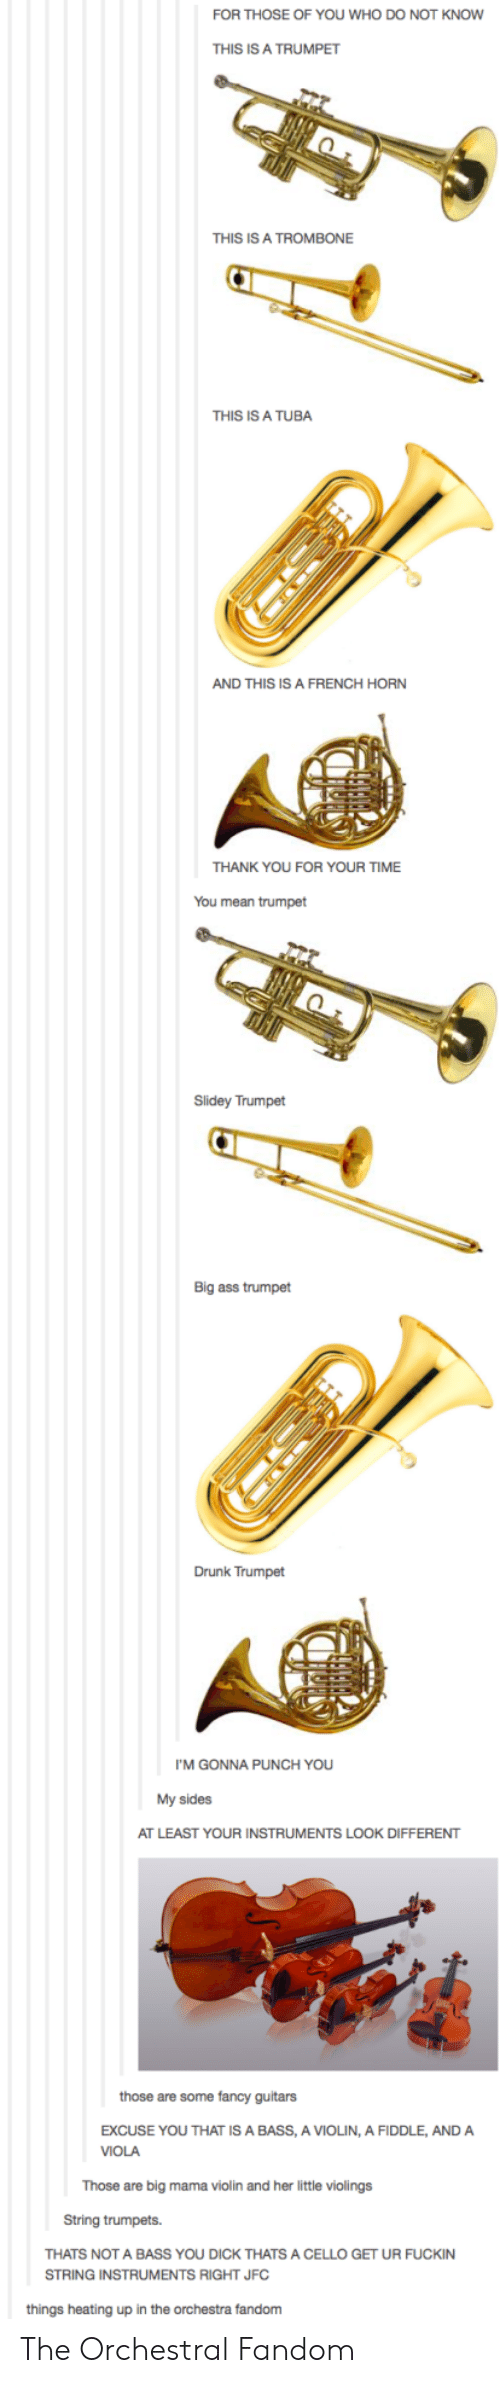 You Dick: FOR THOSE OF YOU WHO DO NOT KNOW  THIS IS A TRUMPET  THIS IS A TROMBONE  THIS IS A TUBA  AND THIS IS A FRENCH HORN  THANK YOU FOR YOUR TIME  You mean trumpet  Slidey Trumpet  Big ass trumpet  Drunk Trumpet  'M GONNA PUNCH YOU  My sides  AT LEAST YOUR INSTRUMENTS LOOK DIFFERENT  those are some fancy guitars  EXCUSE YOU THAT IS A BASS, A VIOLIN, A FIDDLE, AND A  VIOLA  Those are big mama violin and her little violings  String trumpets.  THATS NOT A BASS YOU DICK THATS A CELLO GET UR FUCKIN  STRING INSTRUMENTS RIGHT JFC  things heating up in the orchestra fandom The Orchestral Fandom